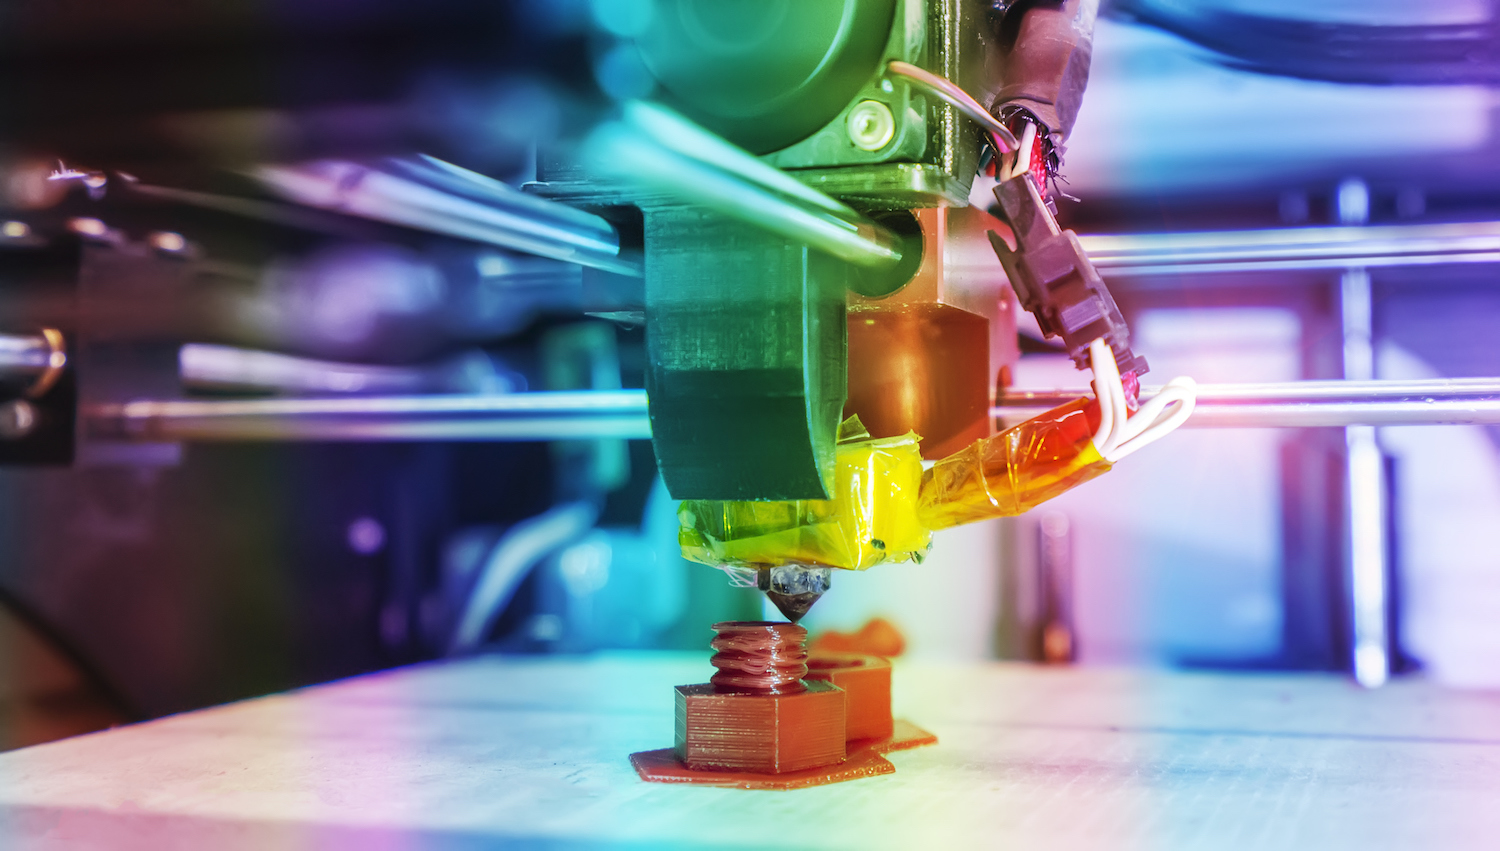 PCI uses 3-D printing to create efficiencies in injection molding process